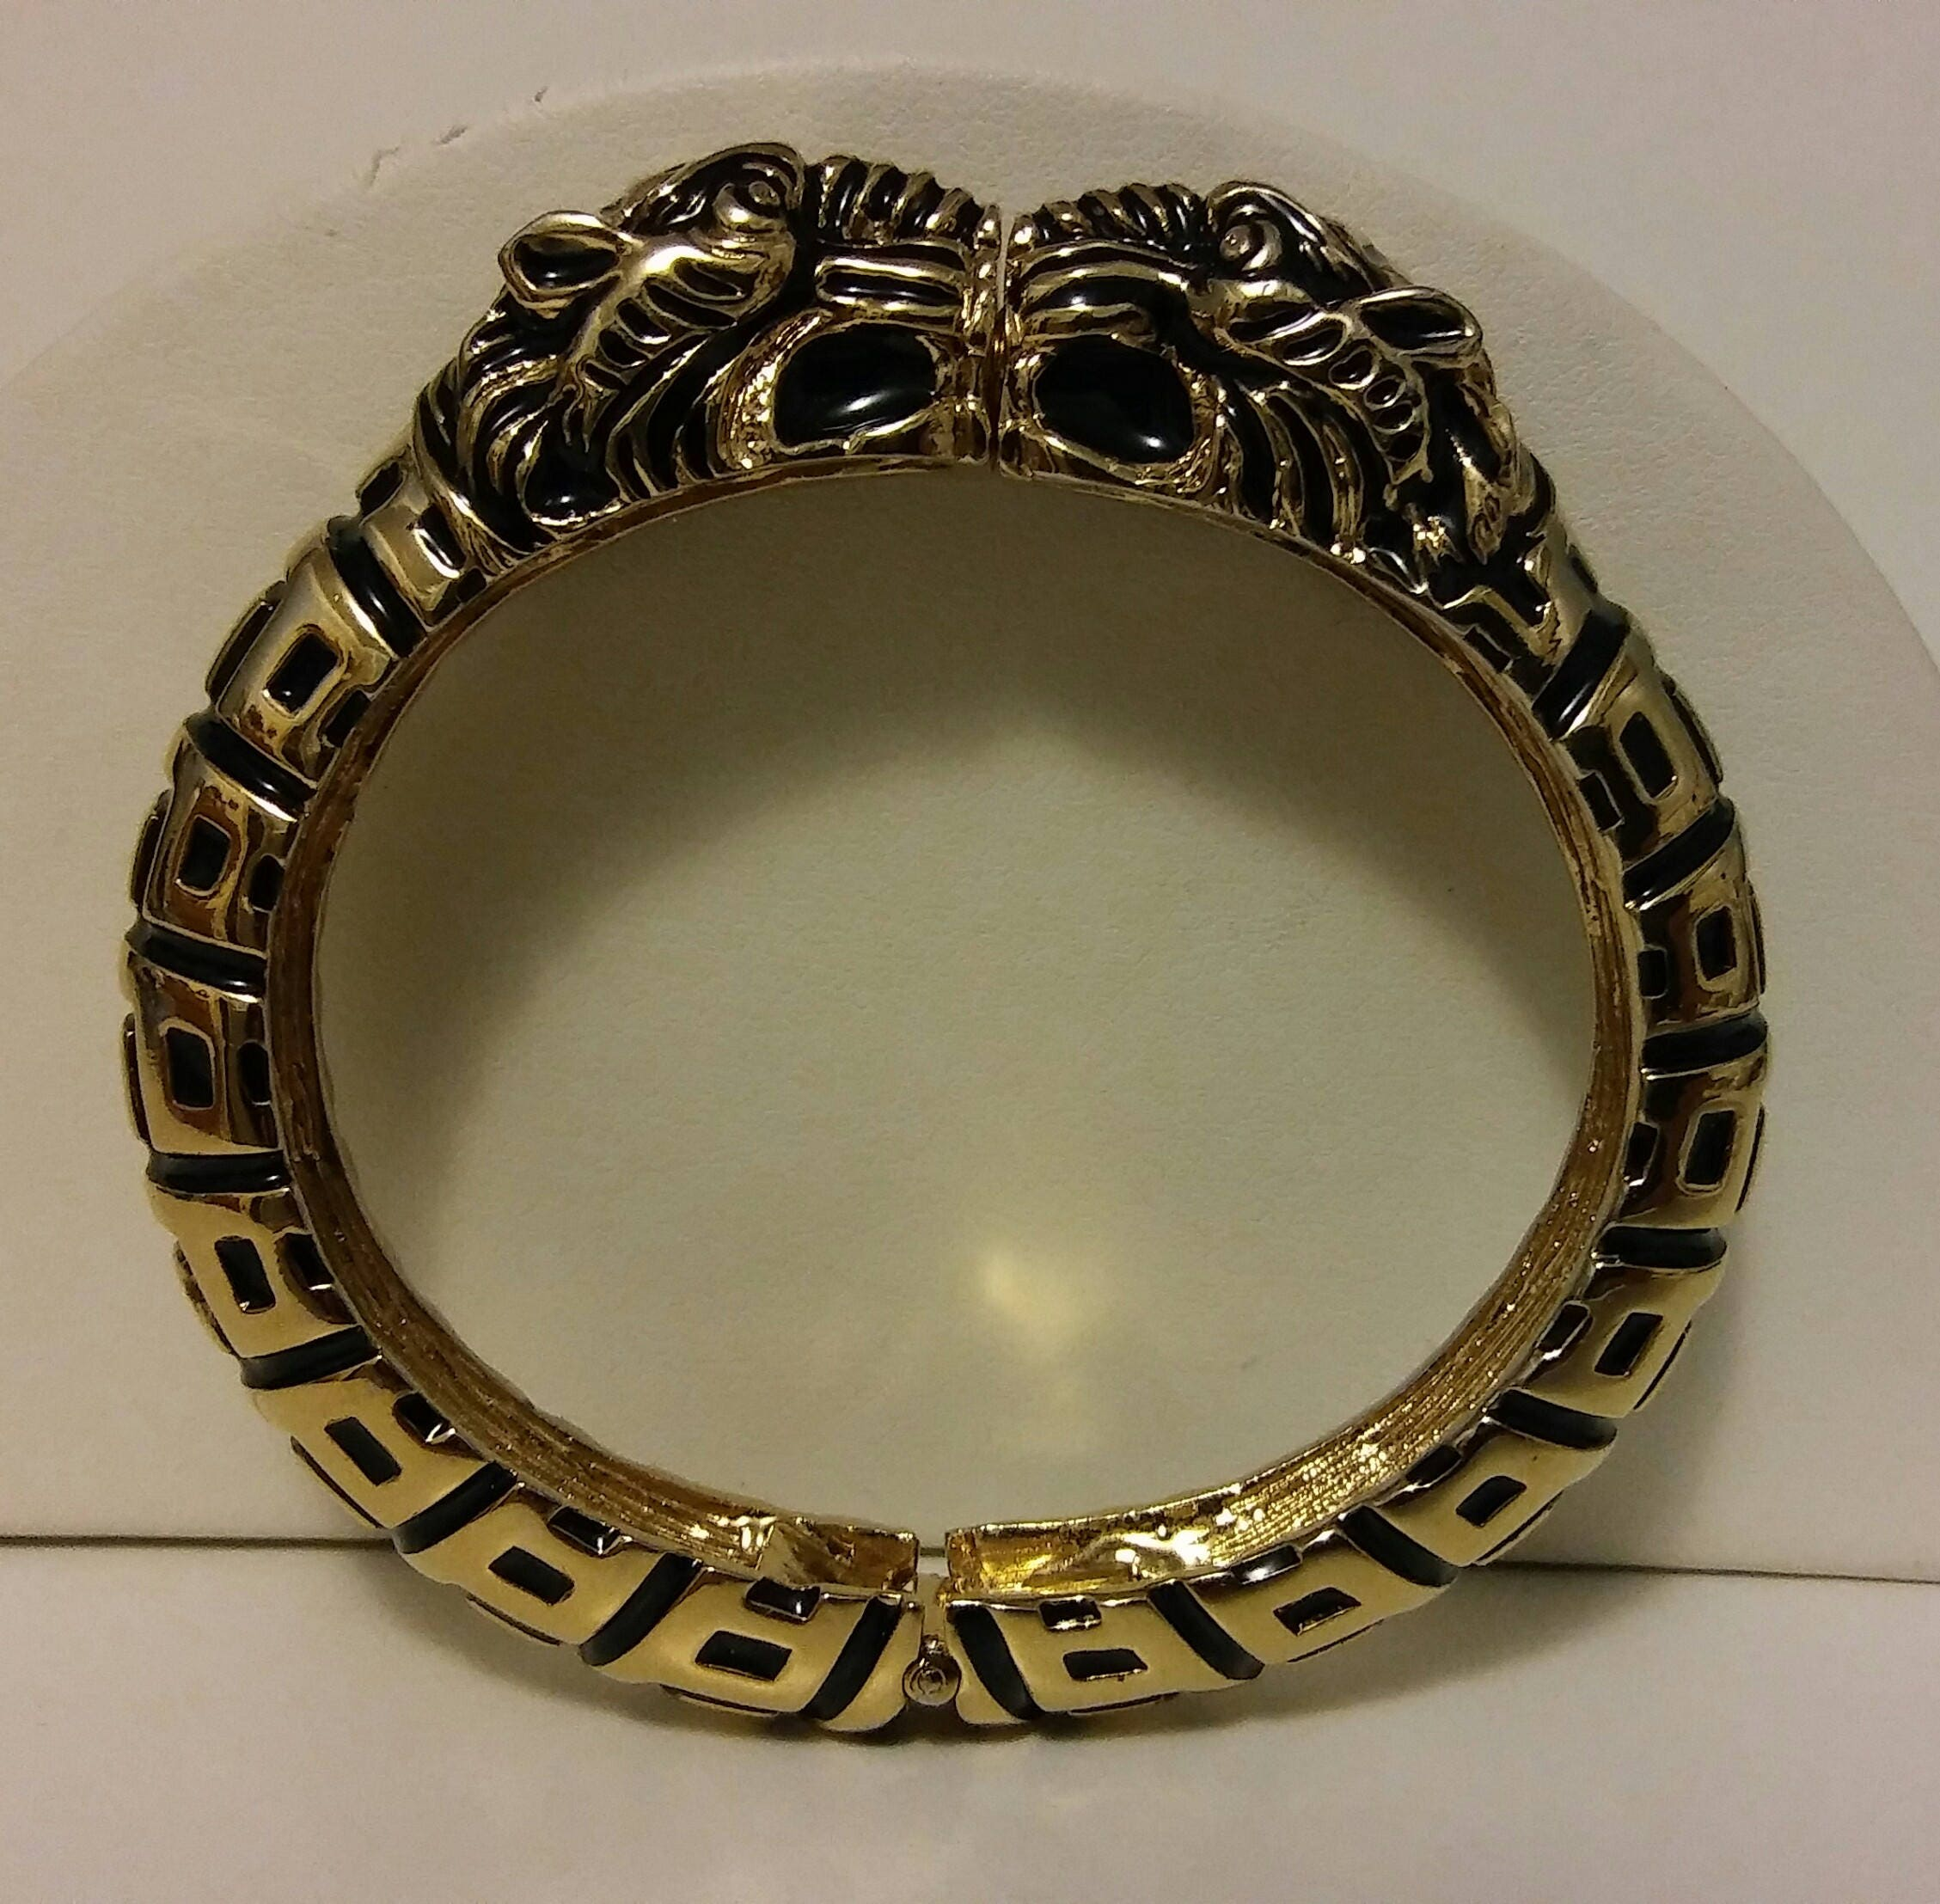 luxurious it heavy find design and plated style bracelet itm etched to gold in clamshell standard measures this monet heavily that wrist clamper size vintage is thick hard by